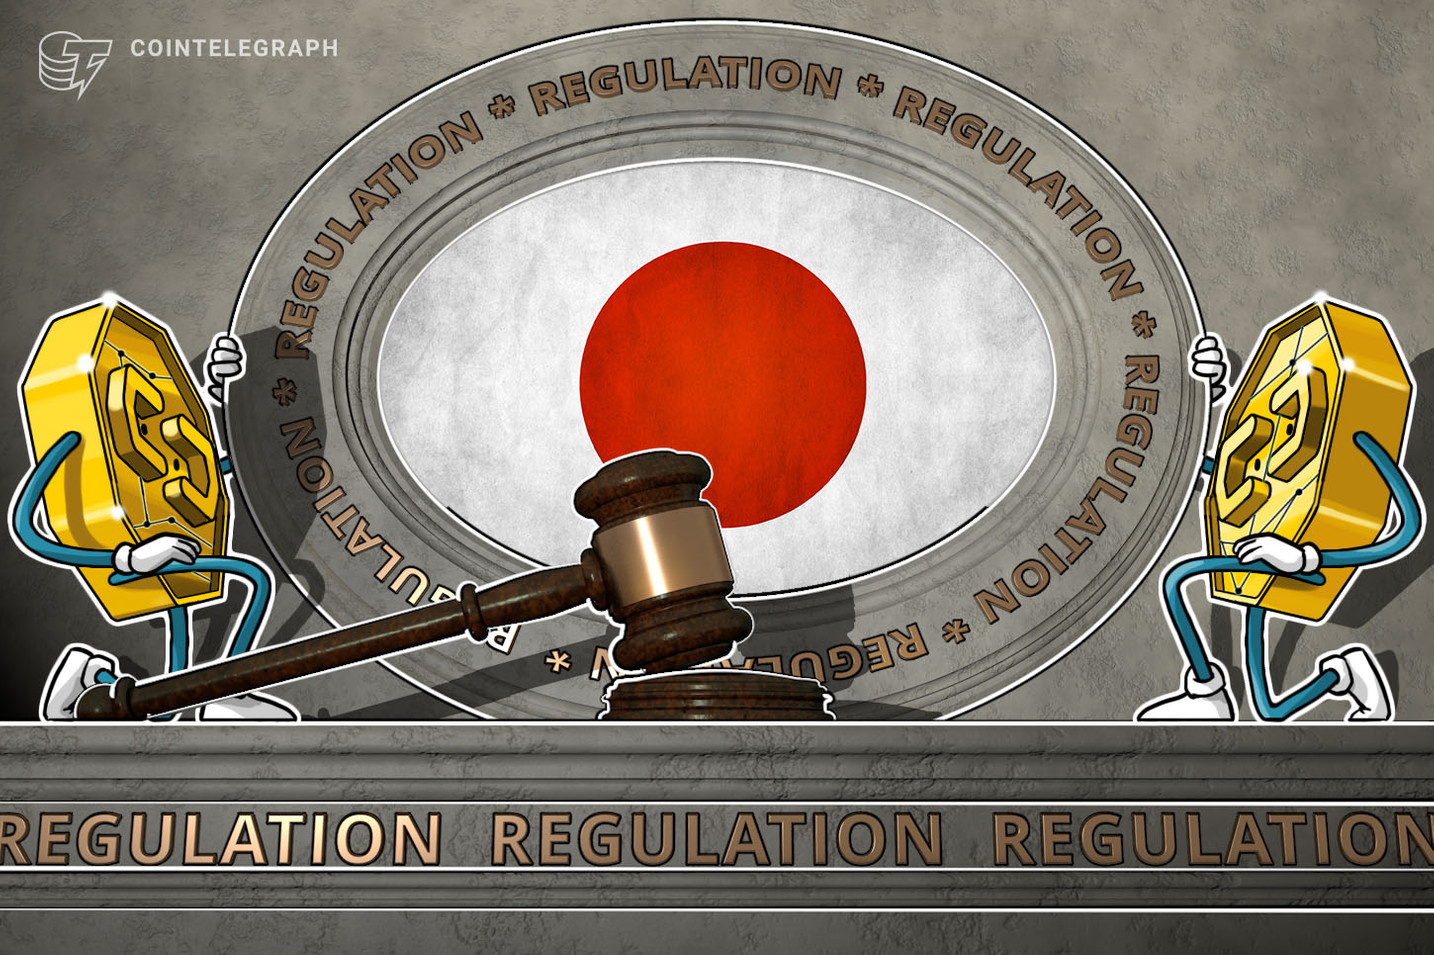 Japan's Financial Regulator Wants Crypto Industry to 'Grow Under Appropriate Regulation'